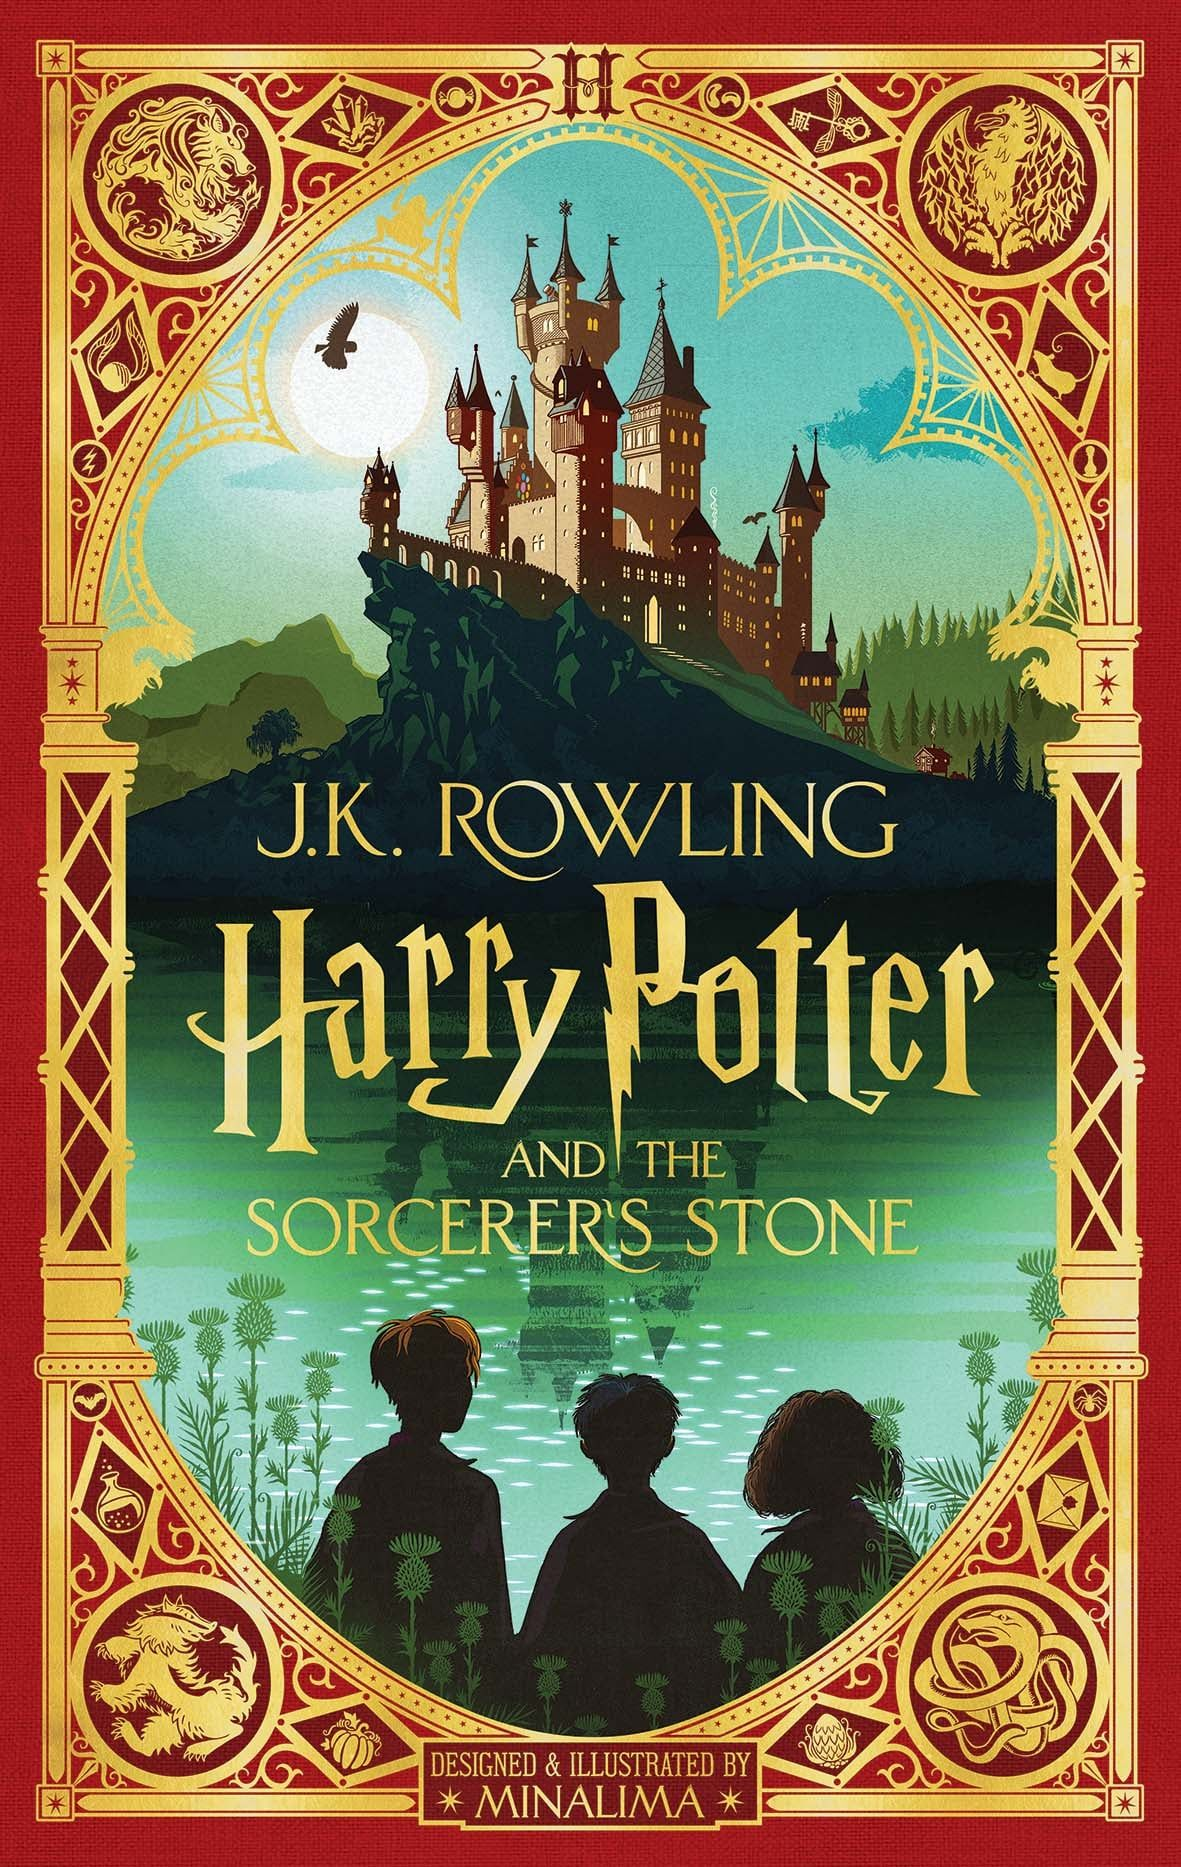 A new illustrated edition of harry potter and the sorcerer